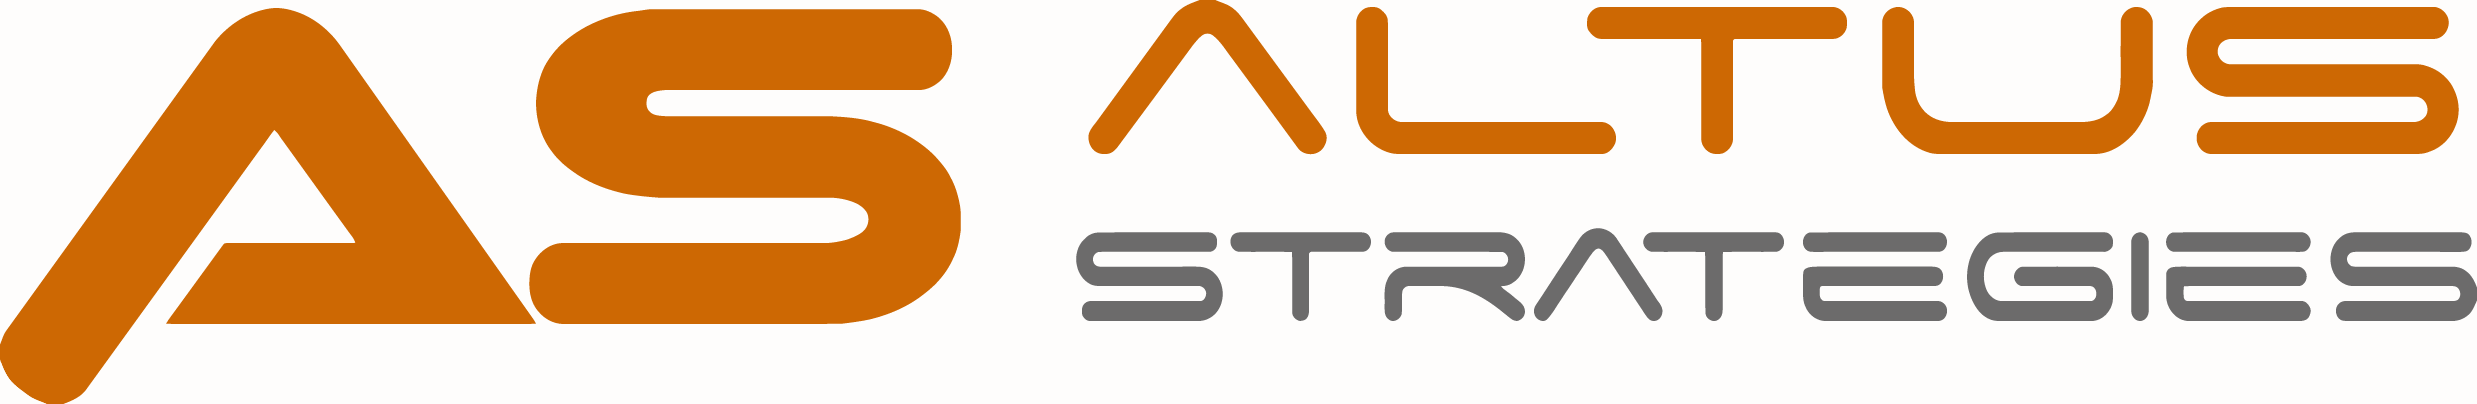 Sponsor-Altus-Strategies.png